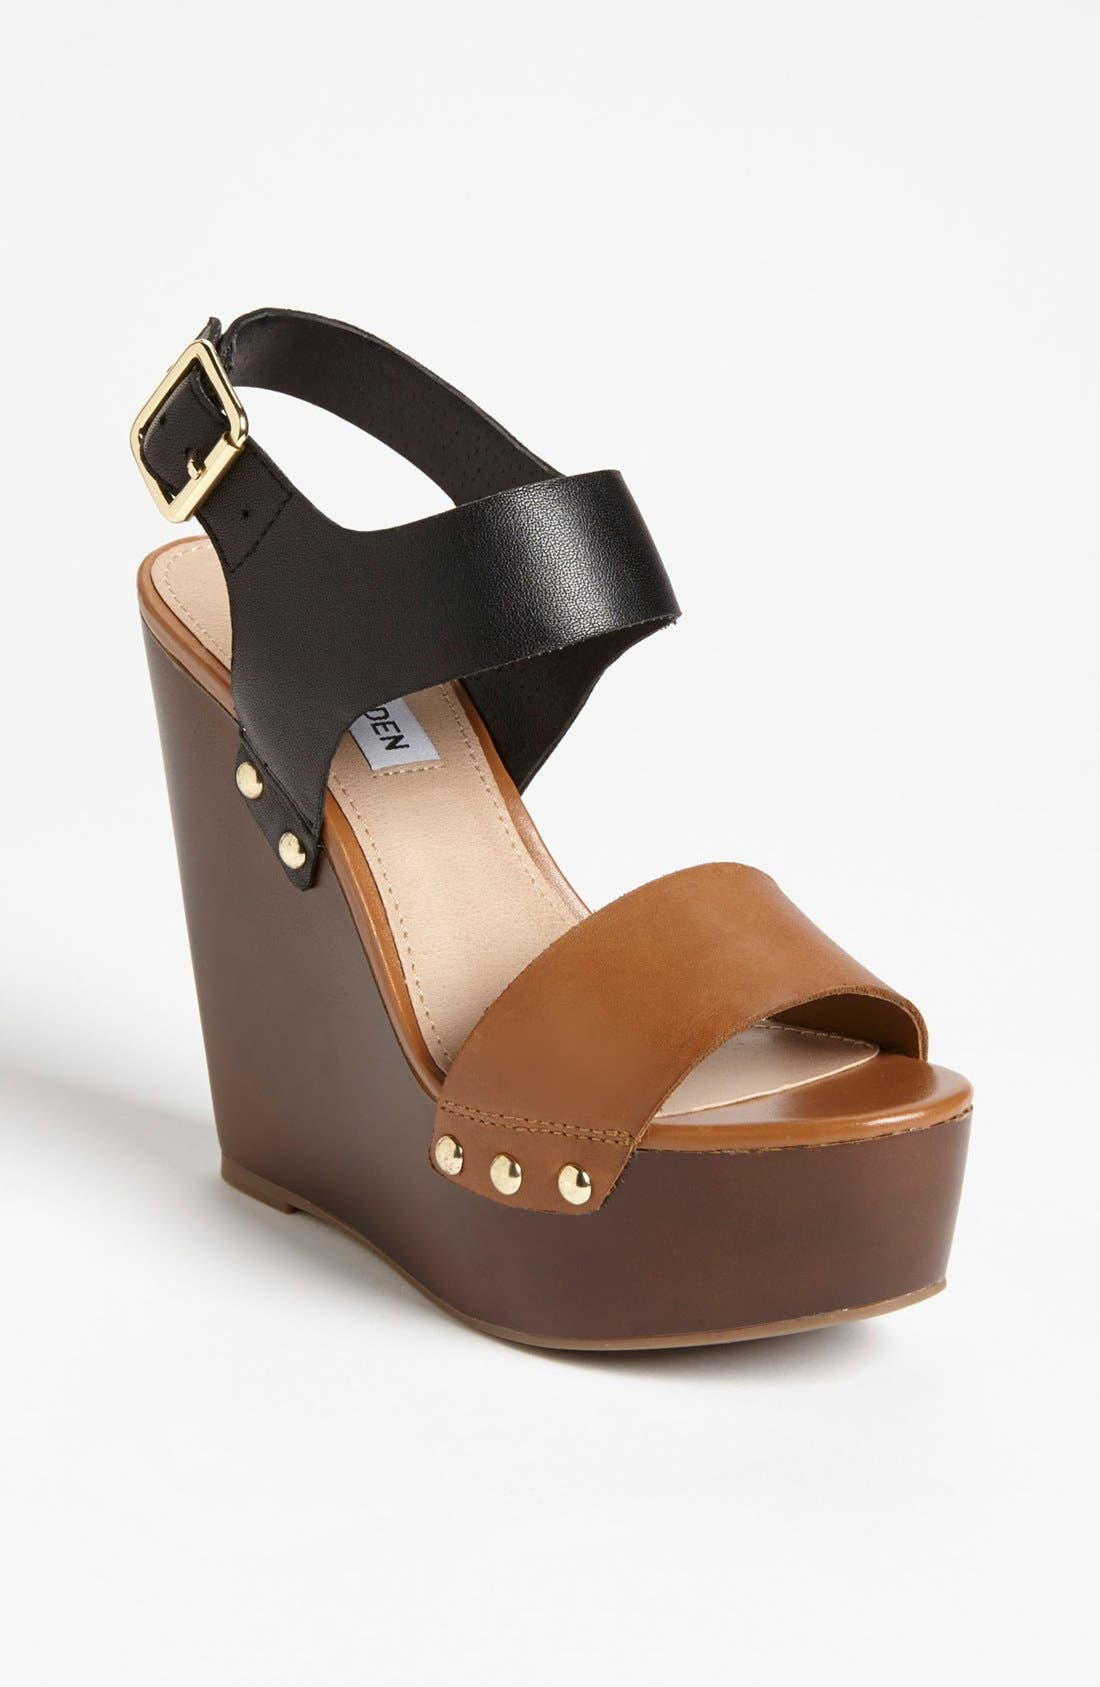 Alternate Image 1 Selected - Steve Madden 'Luucy' Wedge Sandal